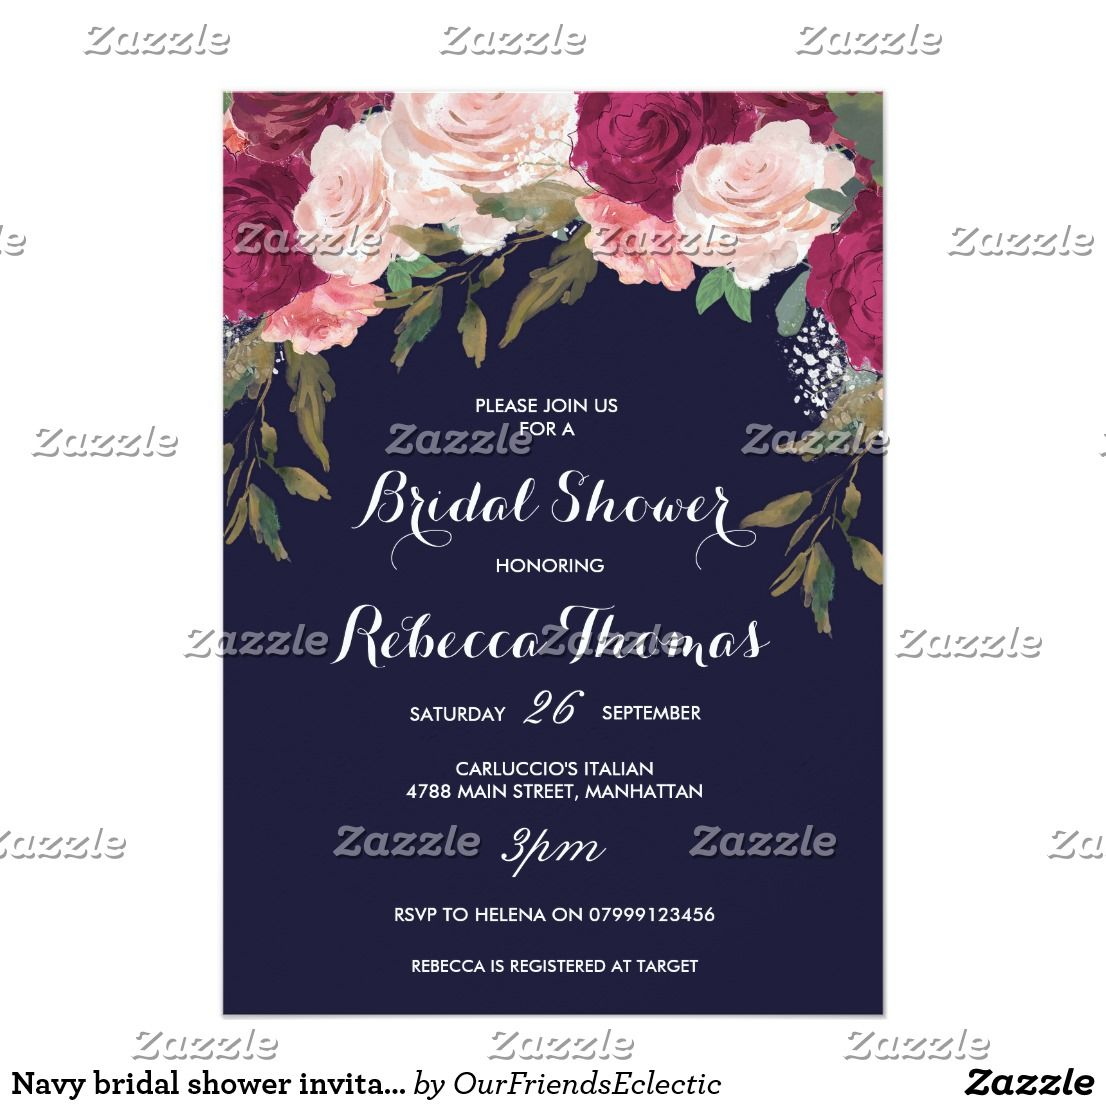 Navy Bridal Shower Invitation Burgundy Pink Floral Navy Bridal